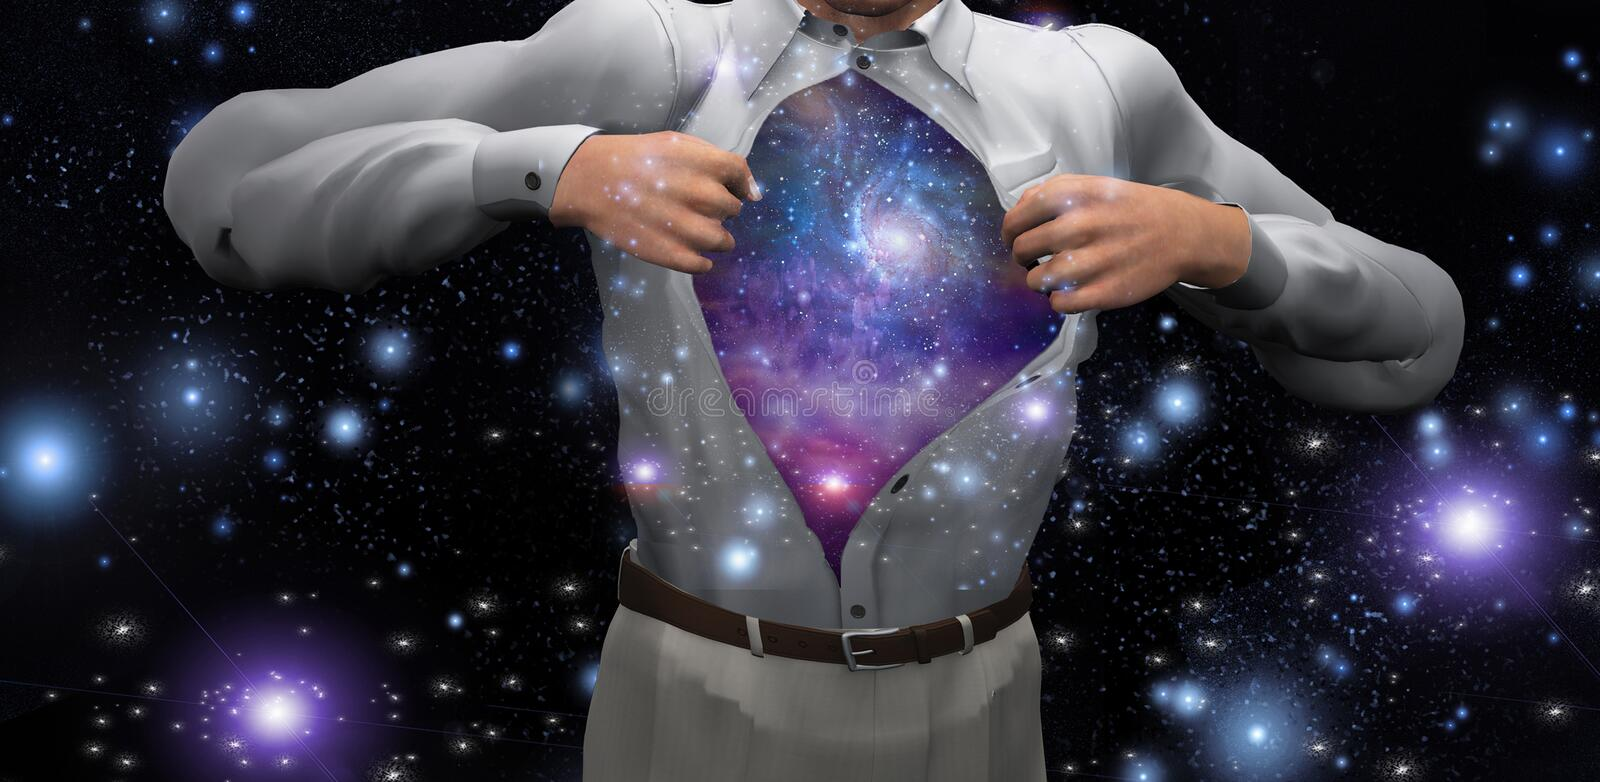 Man with galaxies inside. Man opens shirt to reveal the galaxies. Human elements were created with 3D software and are not from any actual human likenesses. Some stock illustration